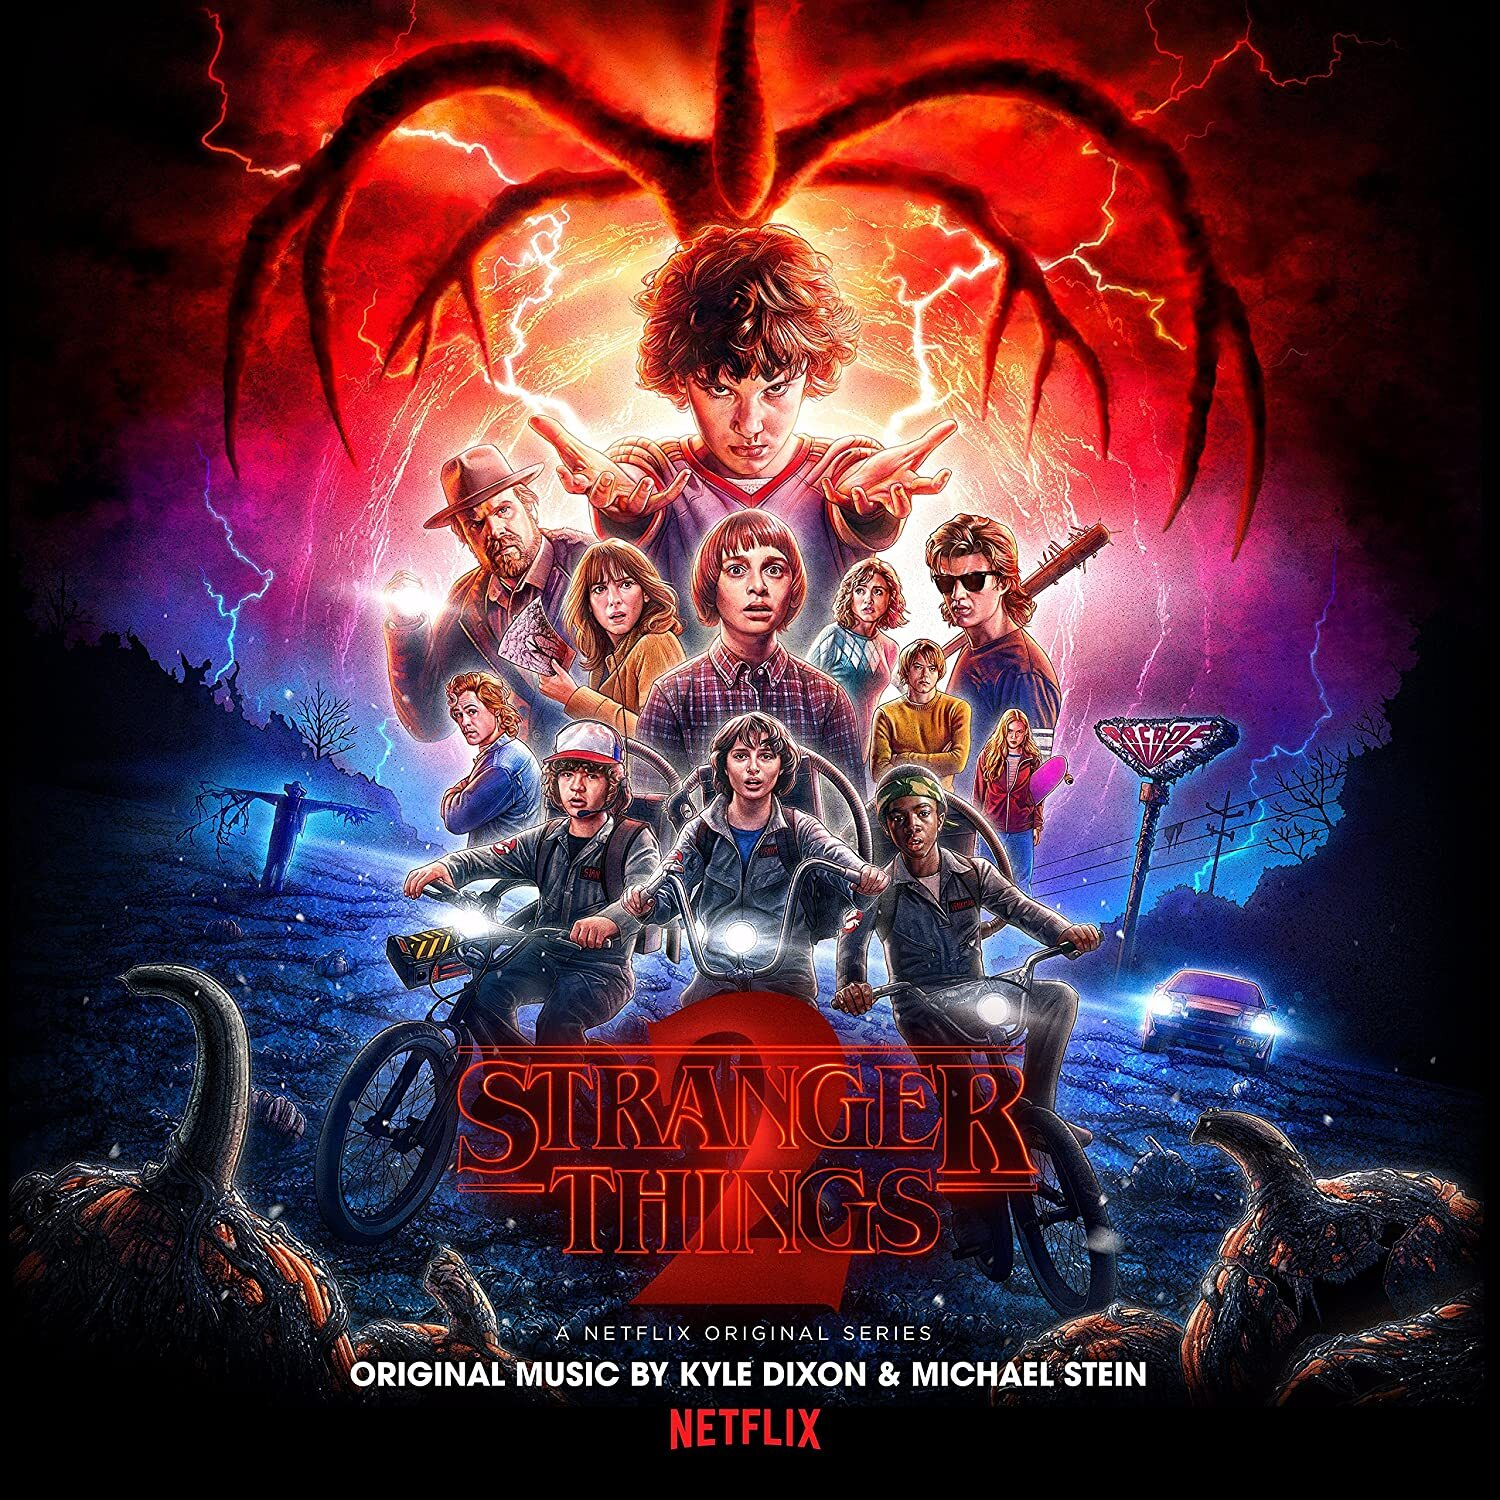 KYLE DIXON & MICHAEL STEIN - STRANGER THINGS SEASON 2  (LTD. Upside Down Inter-Dimensional Blue 2LP)